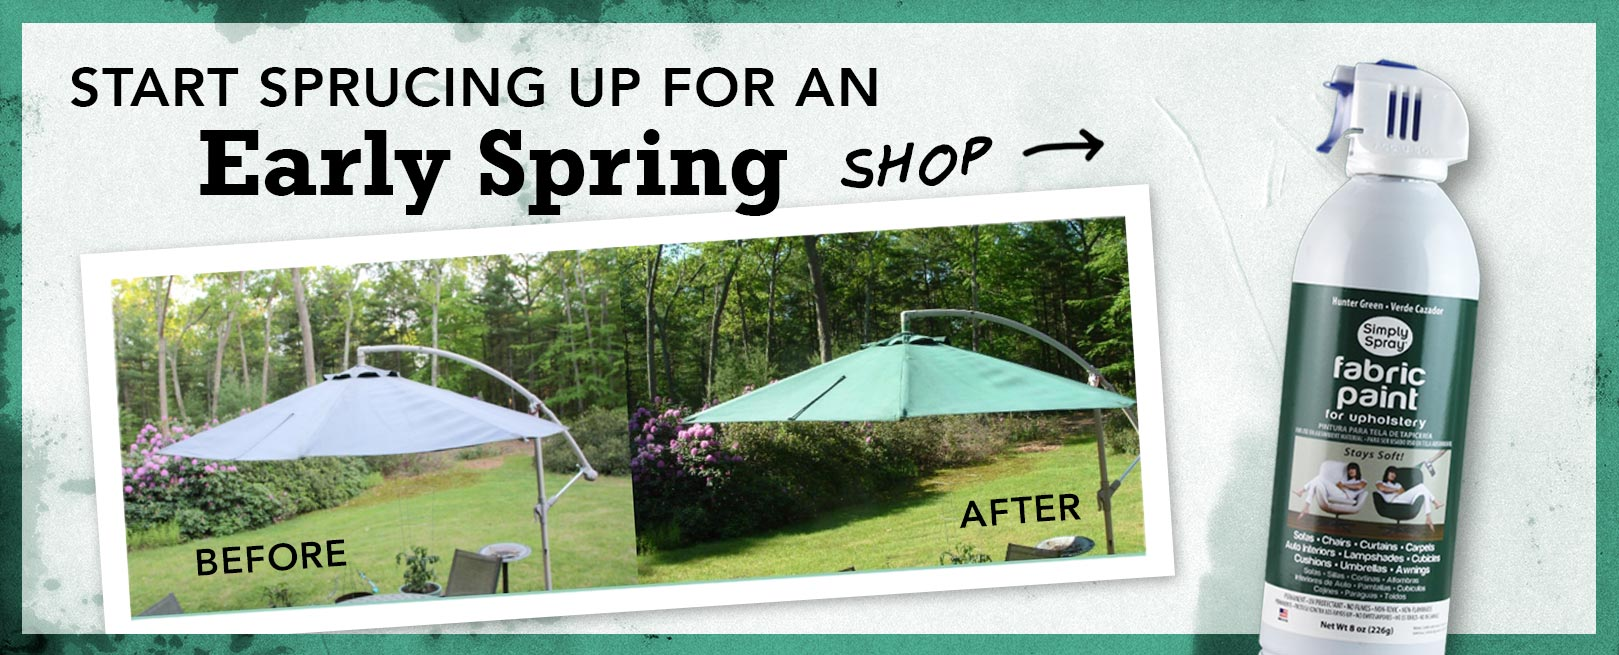 Spruce Up for Early Spring with Fabric Spray Paint